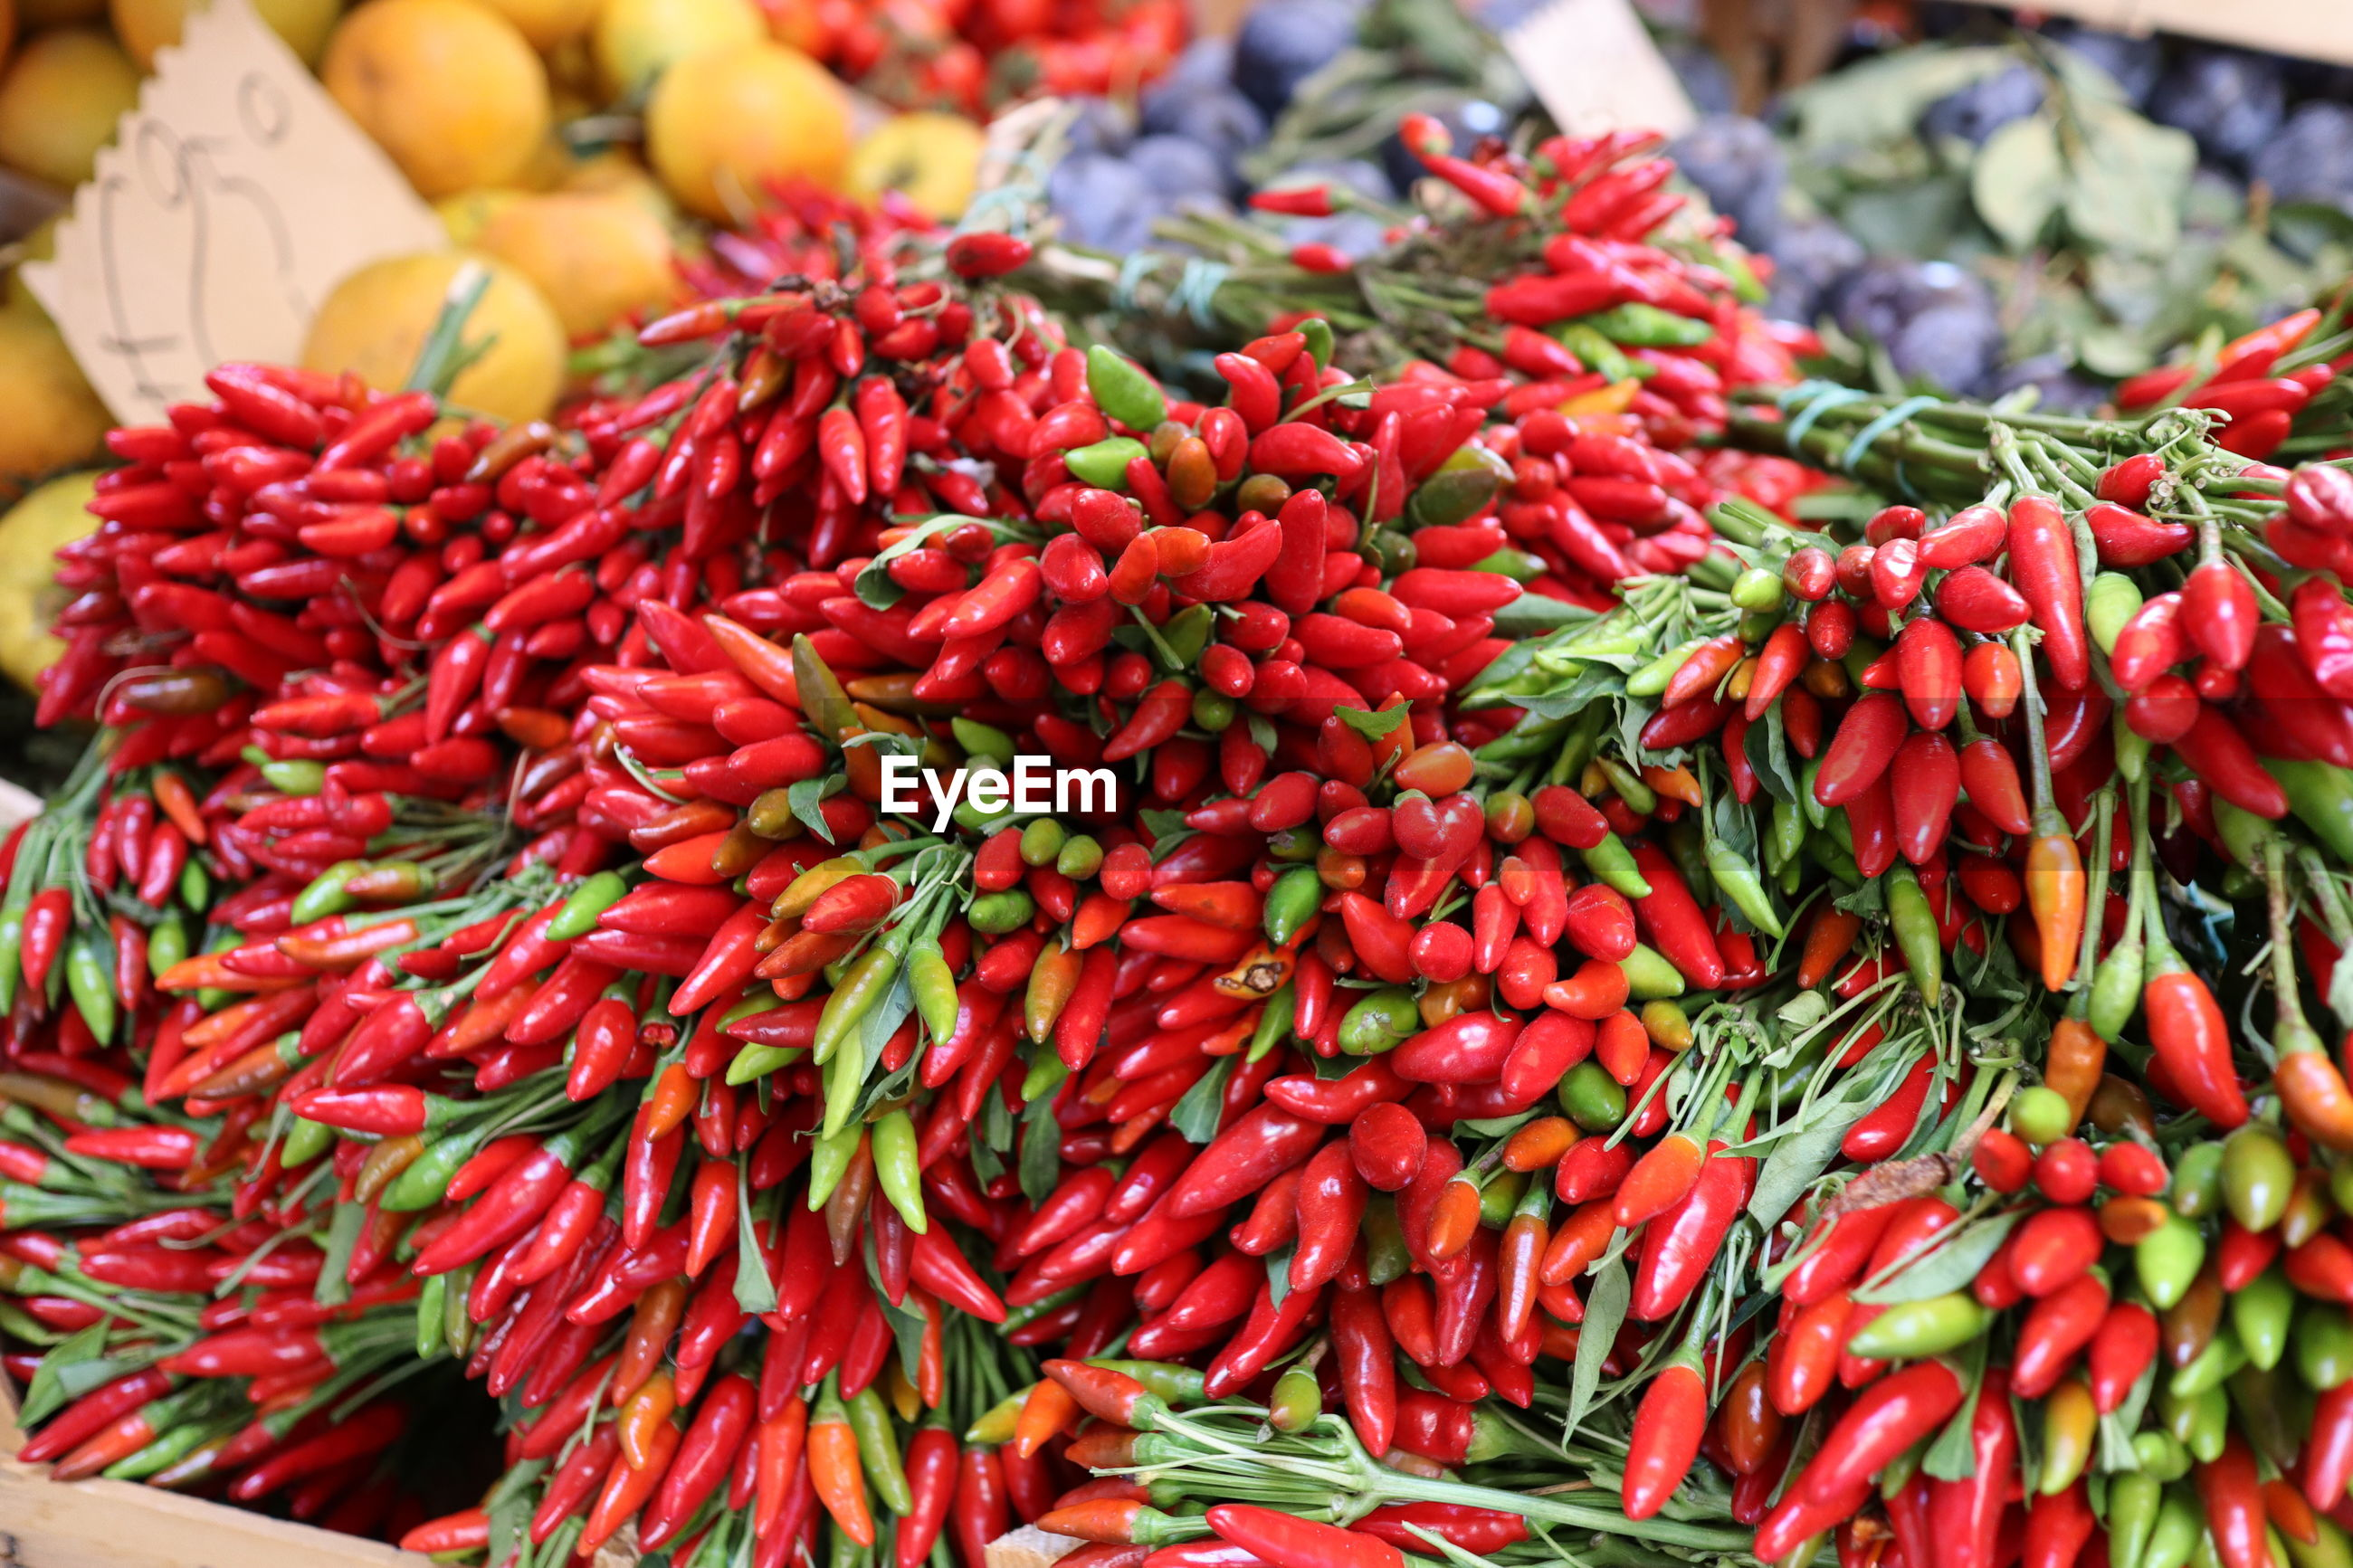 RED CHILI PEPPERS FOR SALE